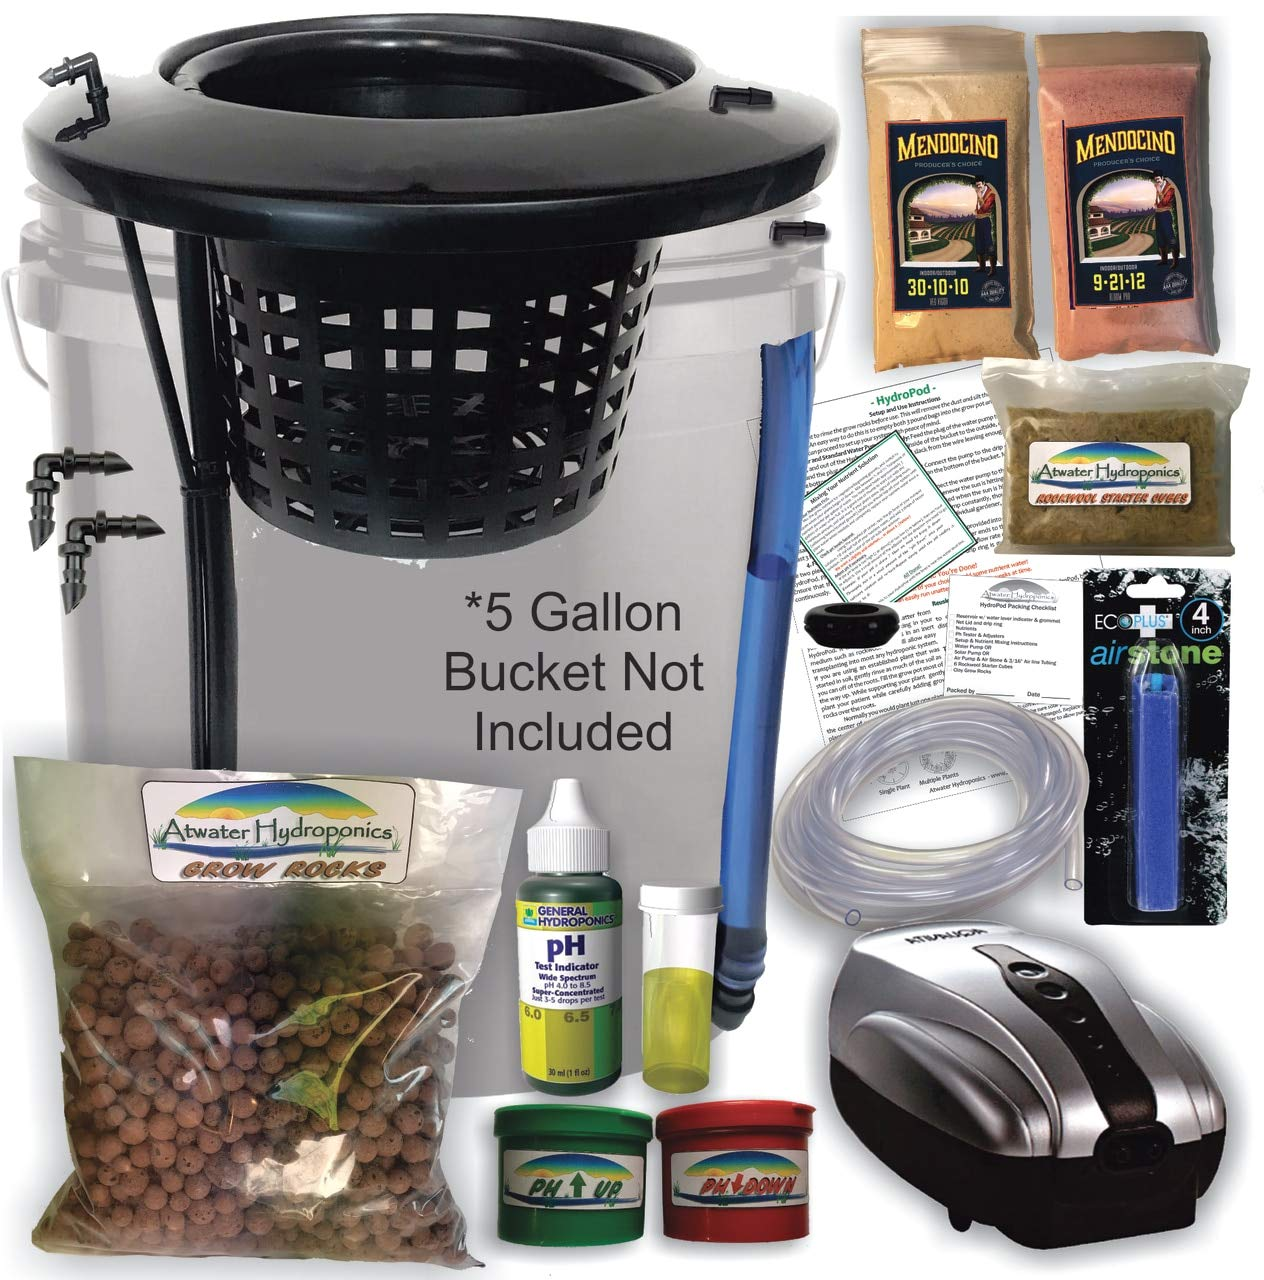 The Atwater HydroPod - DIY Add Your Own Bucket KIT - Dual DWC Deep Water Culture/Recirculating Drip Hydroponic Garden System - Bubble Bucket - Grow Your Own! Start Today!Bucket Not Included Save $$ by Atwater Hydroponics